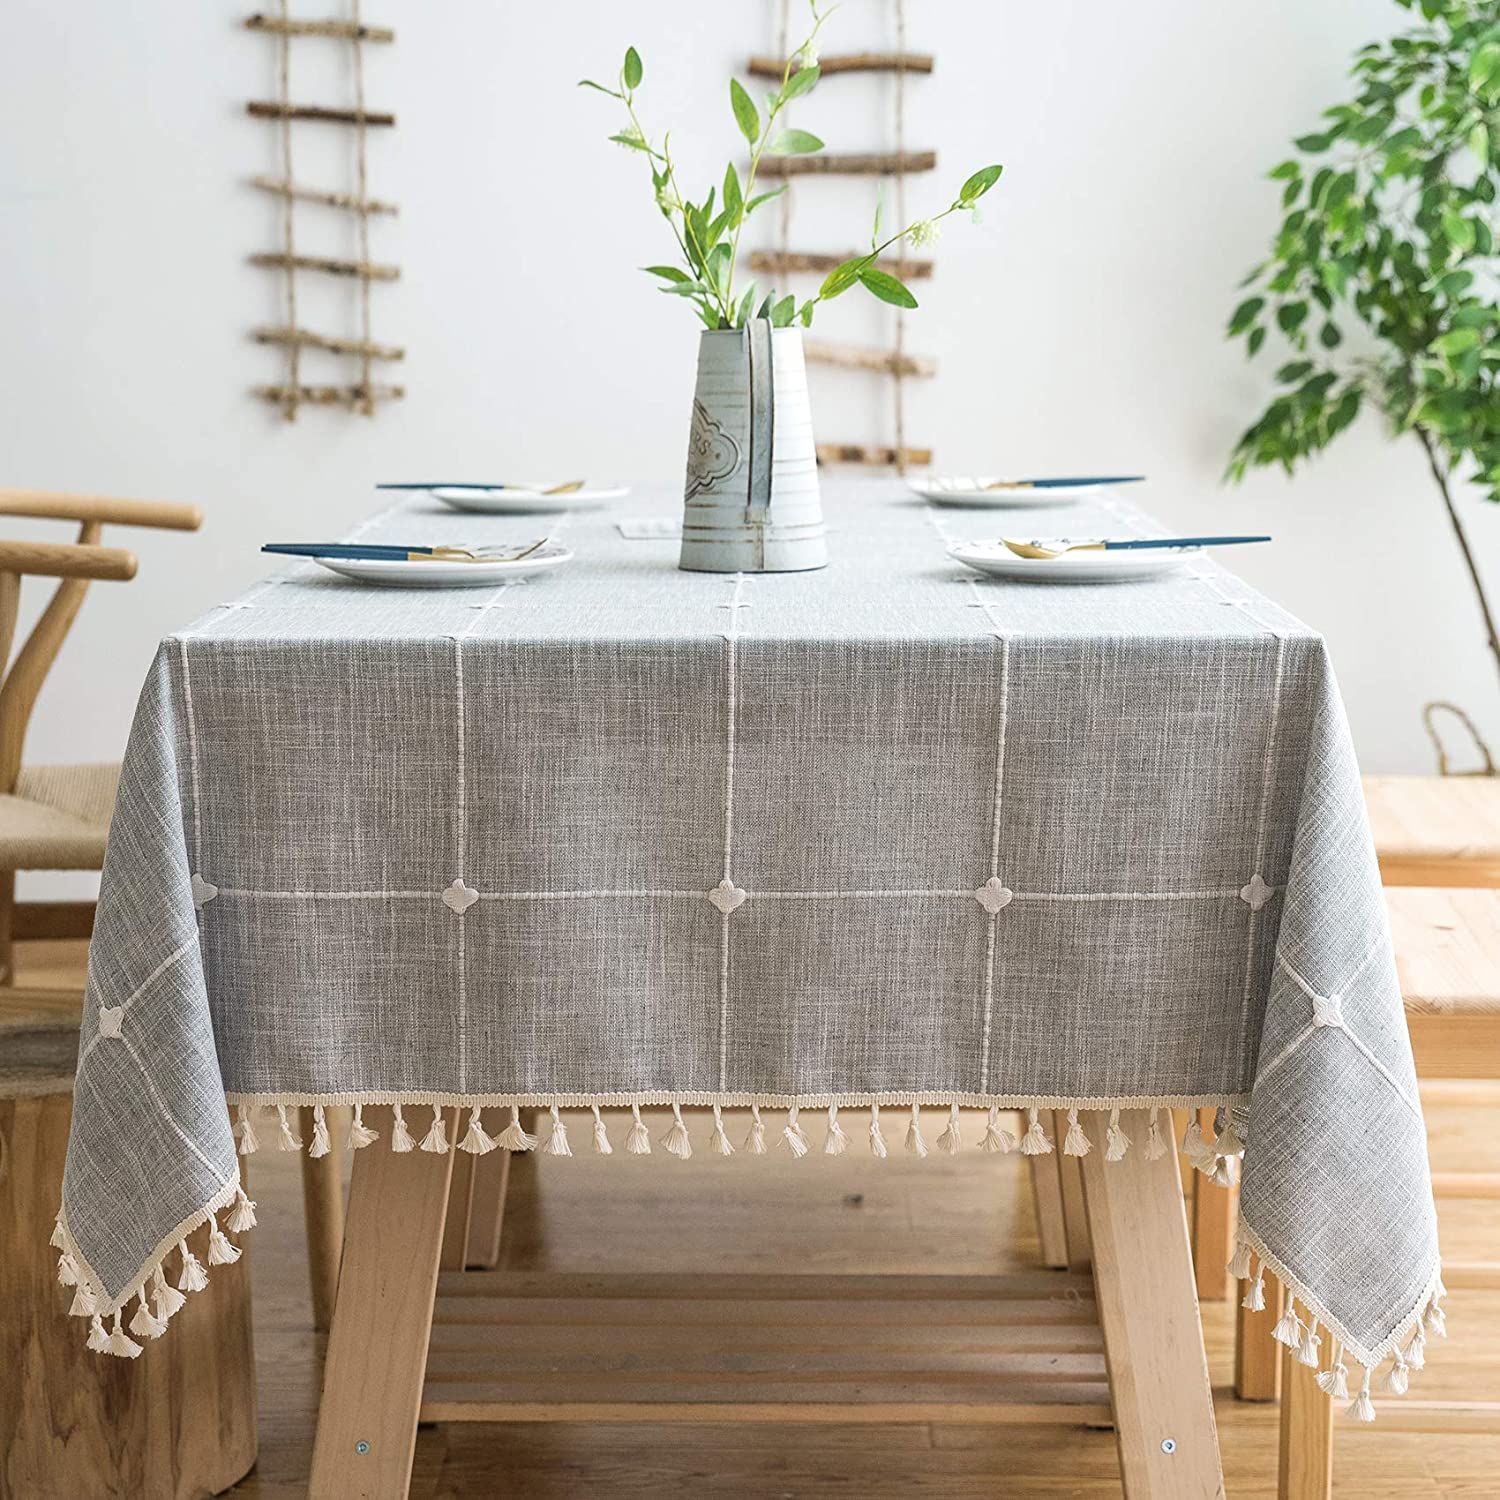 "Oubonun Rustic Lattice Tablecloth (55""x70"") Cotton Linen Grey Rectangle Table Cloths for Kitchen Dining: Kitchen & Dining"